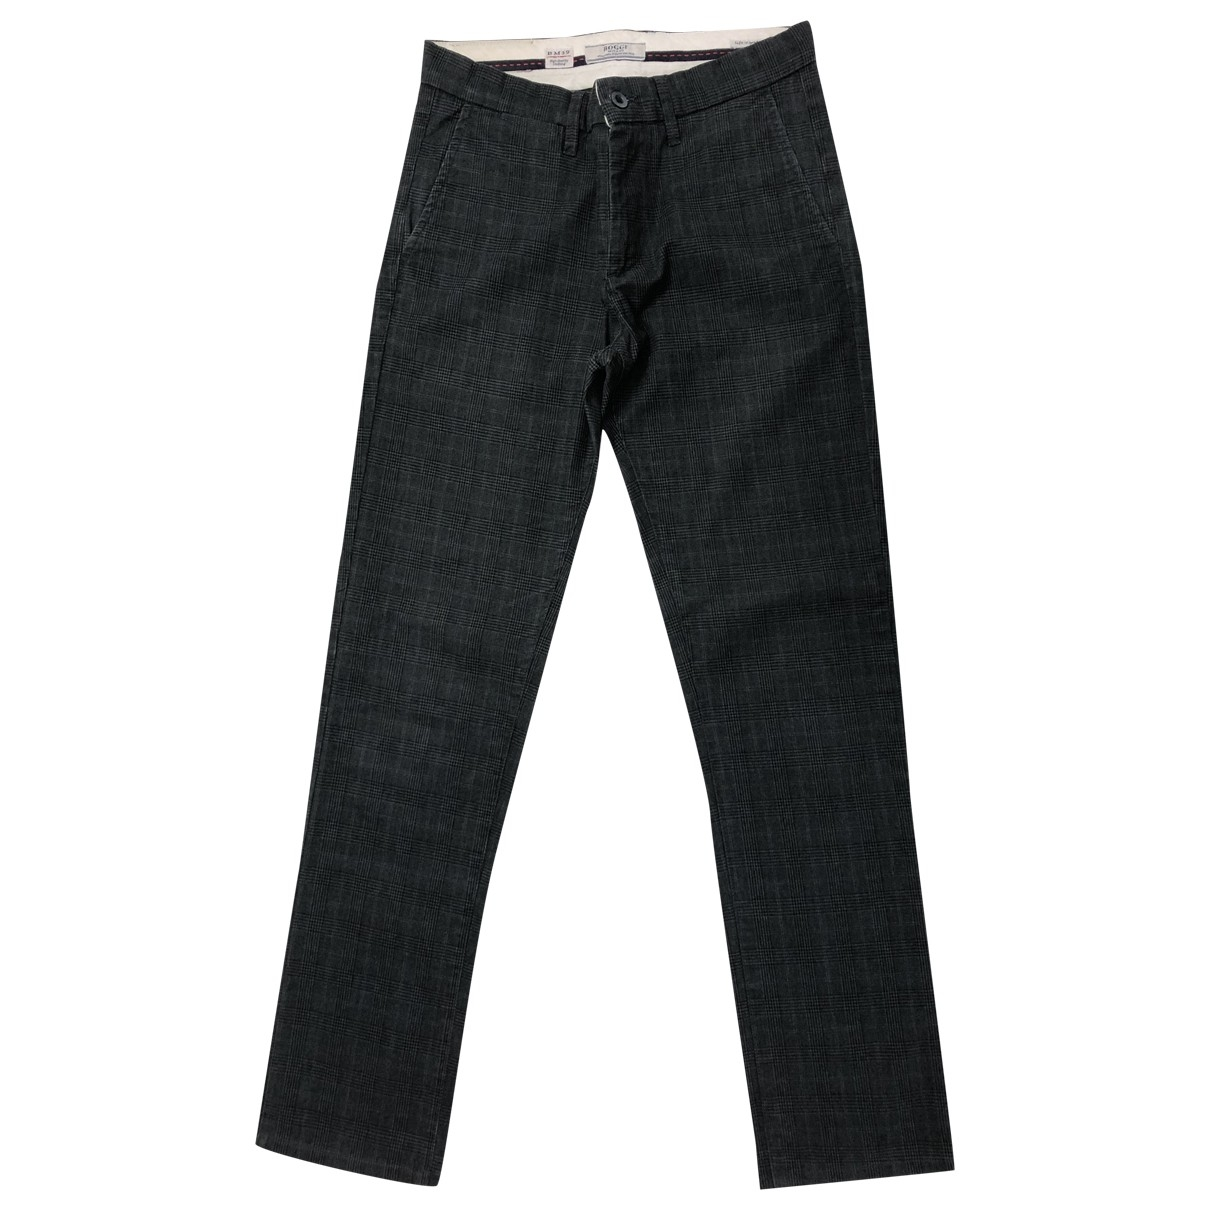 Boggi \N Black Cotton Trousers for Men 30 UK - US